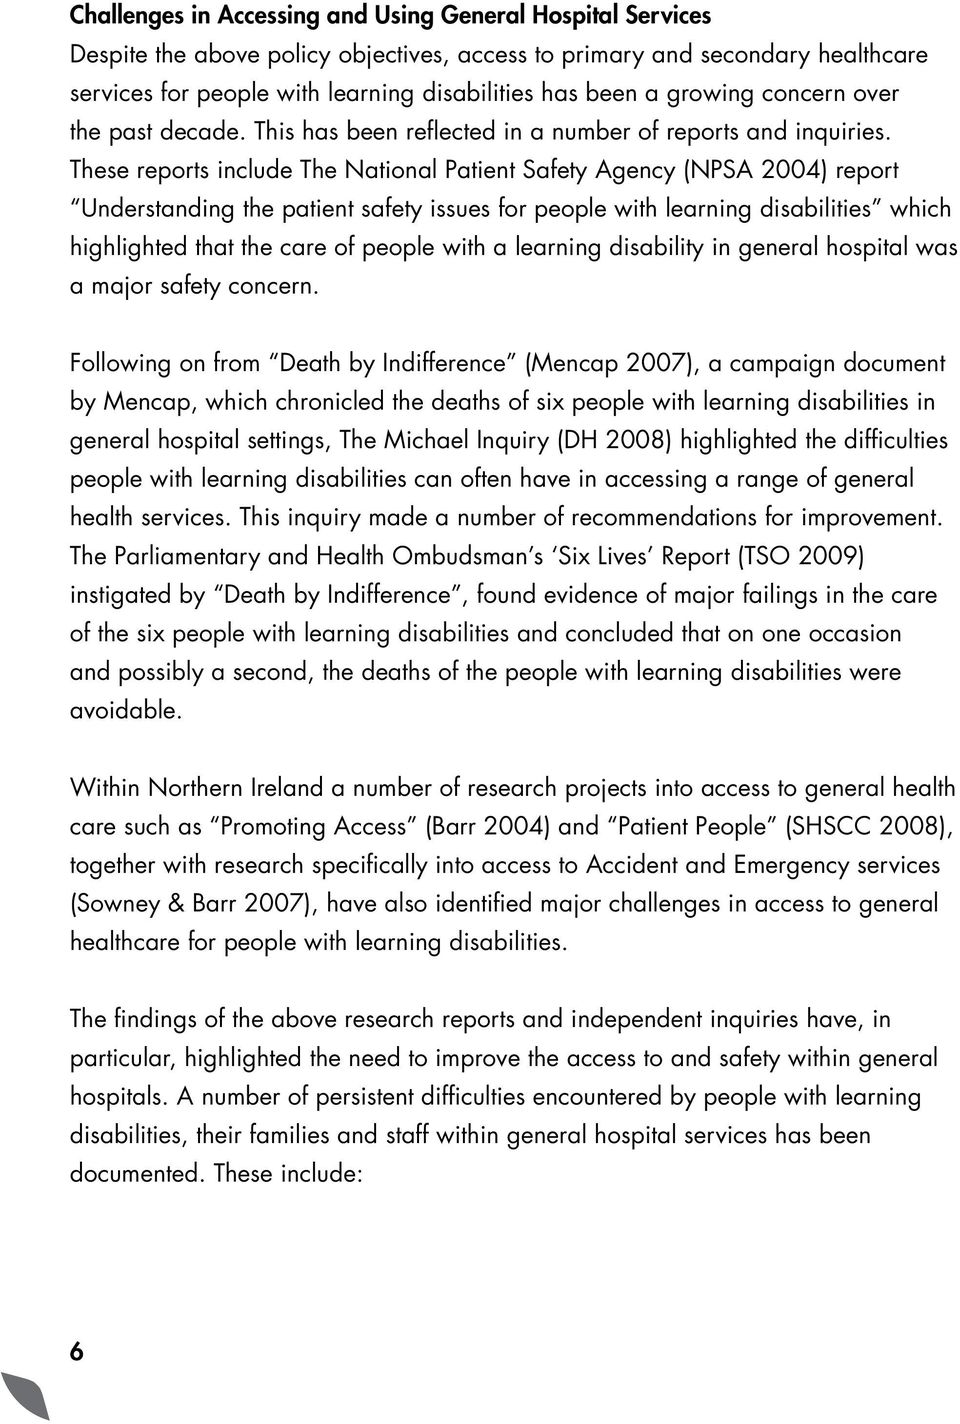 These reports include The National Patient Safety Agency (NPSA 2004) report Understanding the patient safety issues for people with learning disabilities which highlighted that the care of people